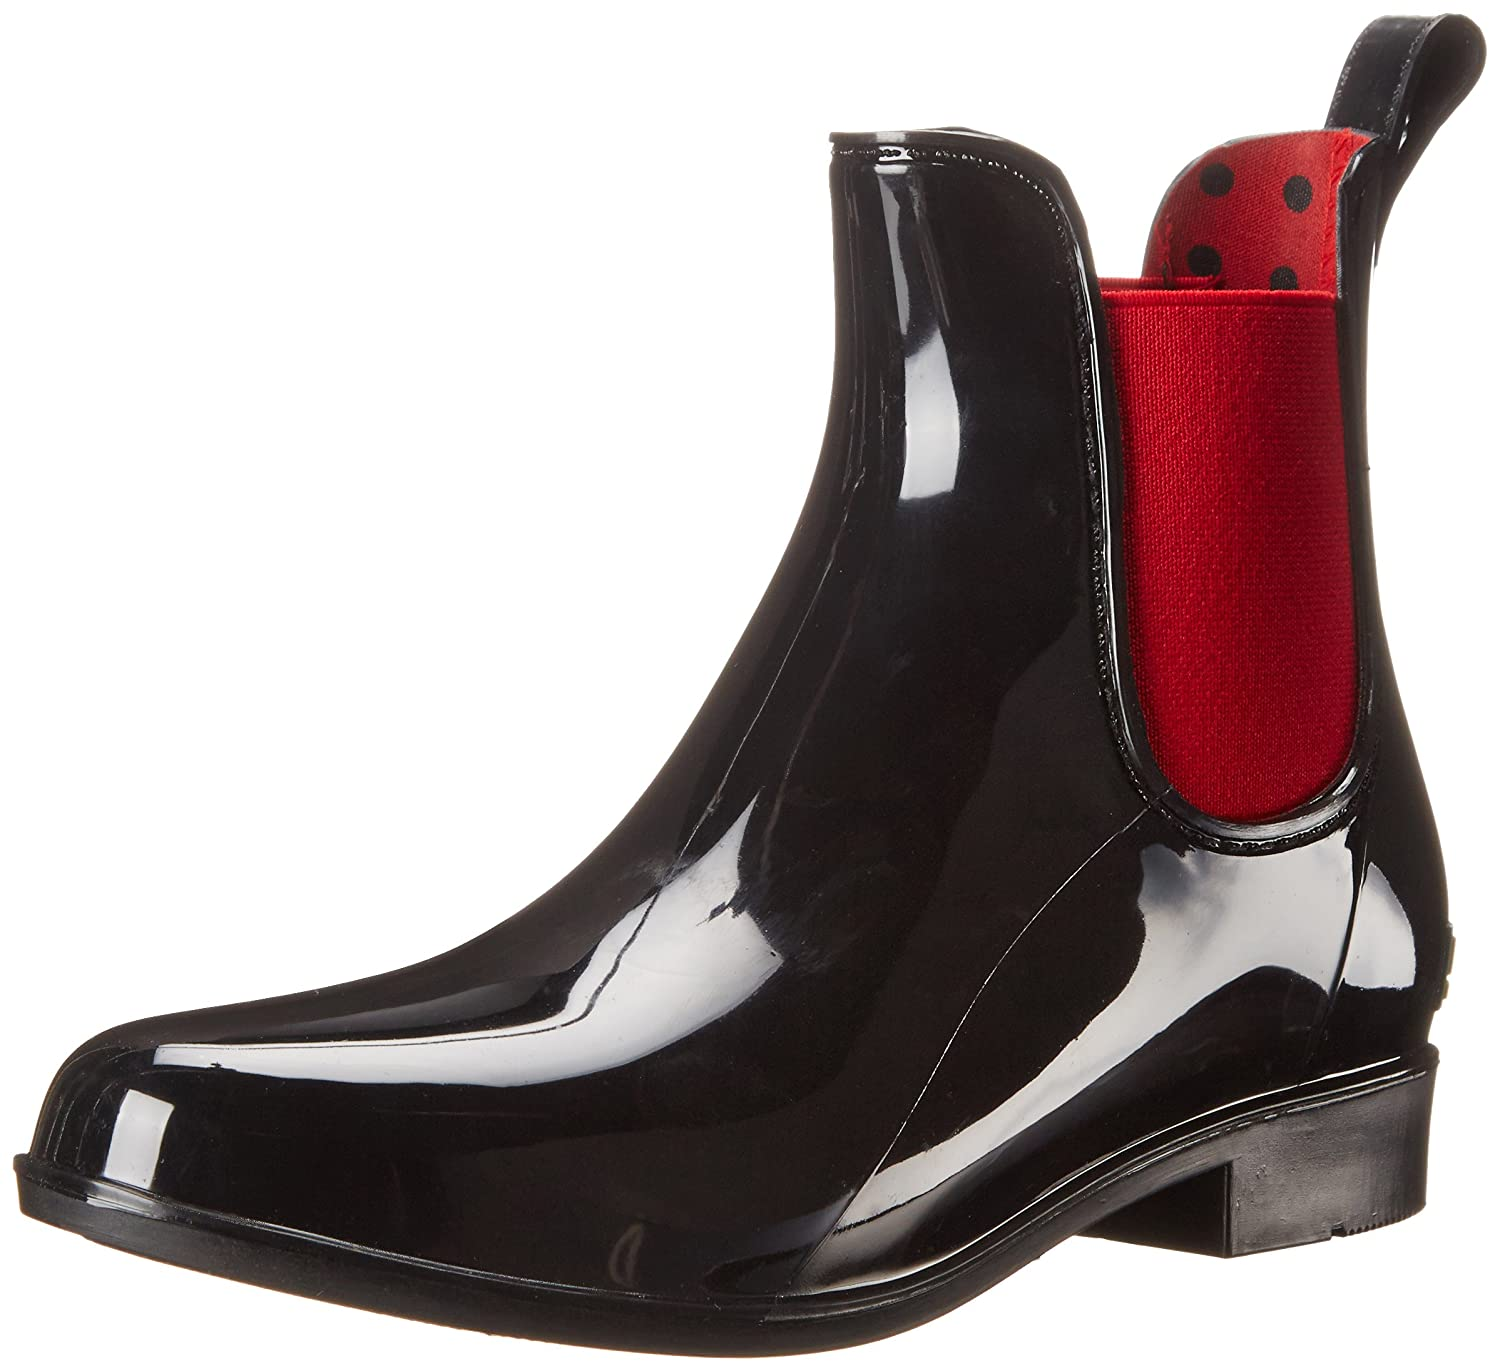 Lauren Ralph Lauren Women's Tally Rain Boot B00L3LOHS6 6 B(M) US|Black/Real Bright Red Solid Polyvinyl Chloride/Elastic